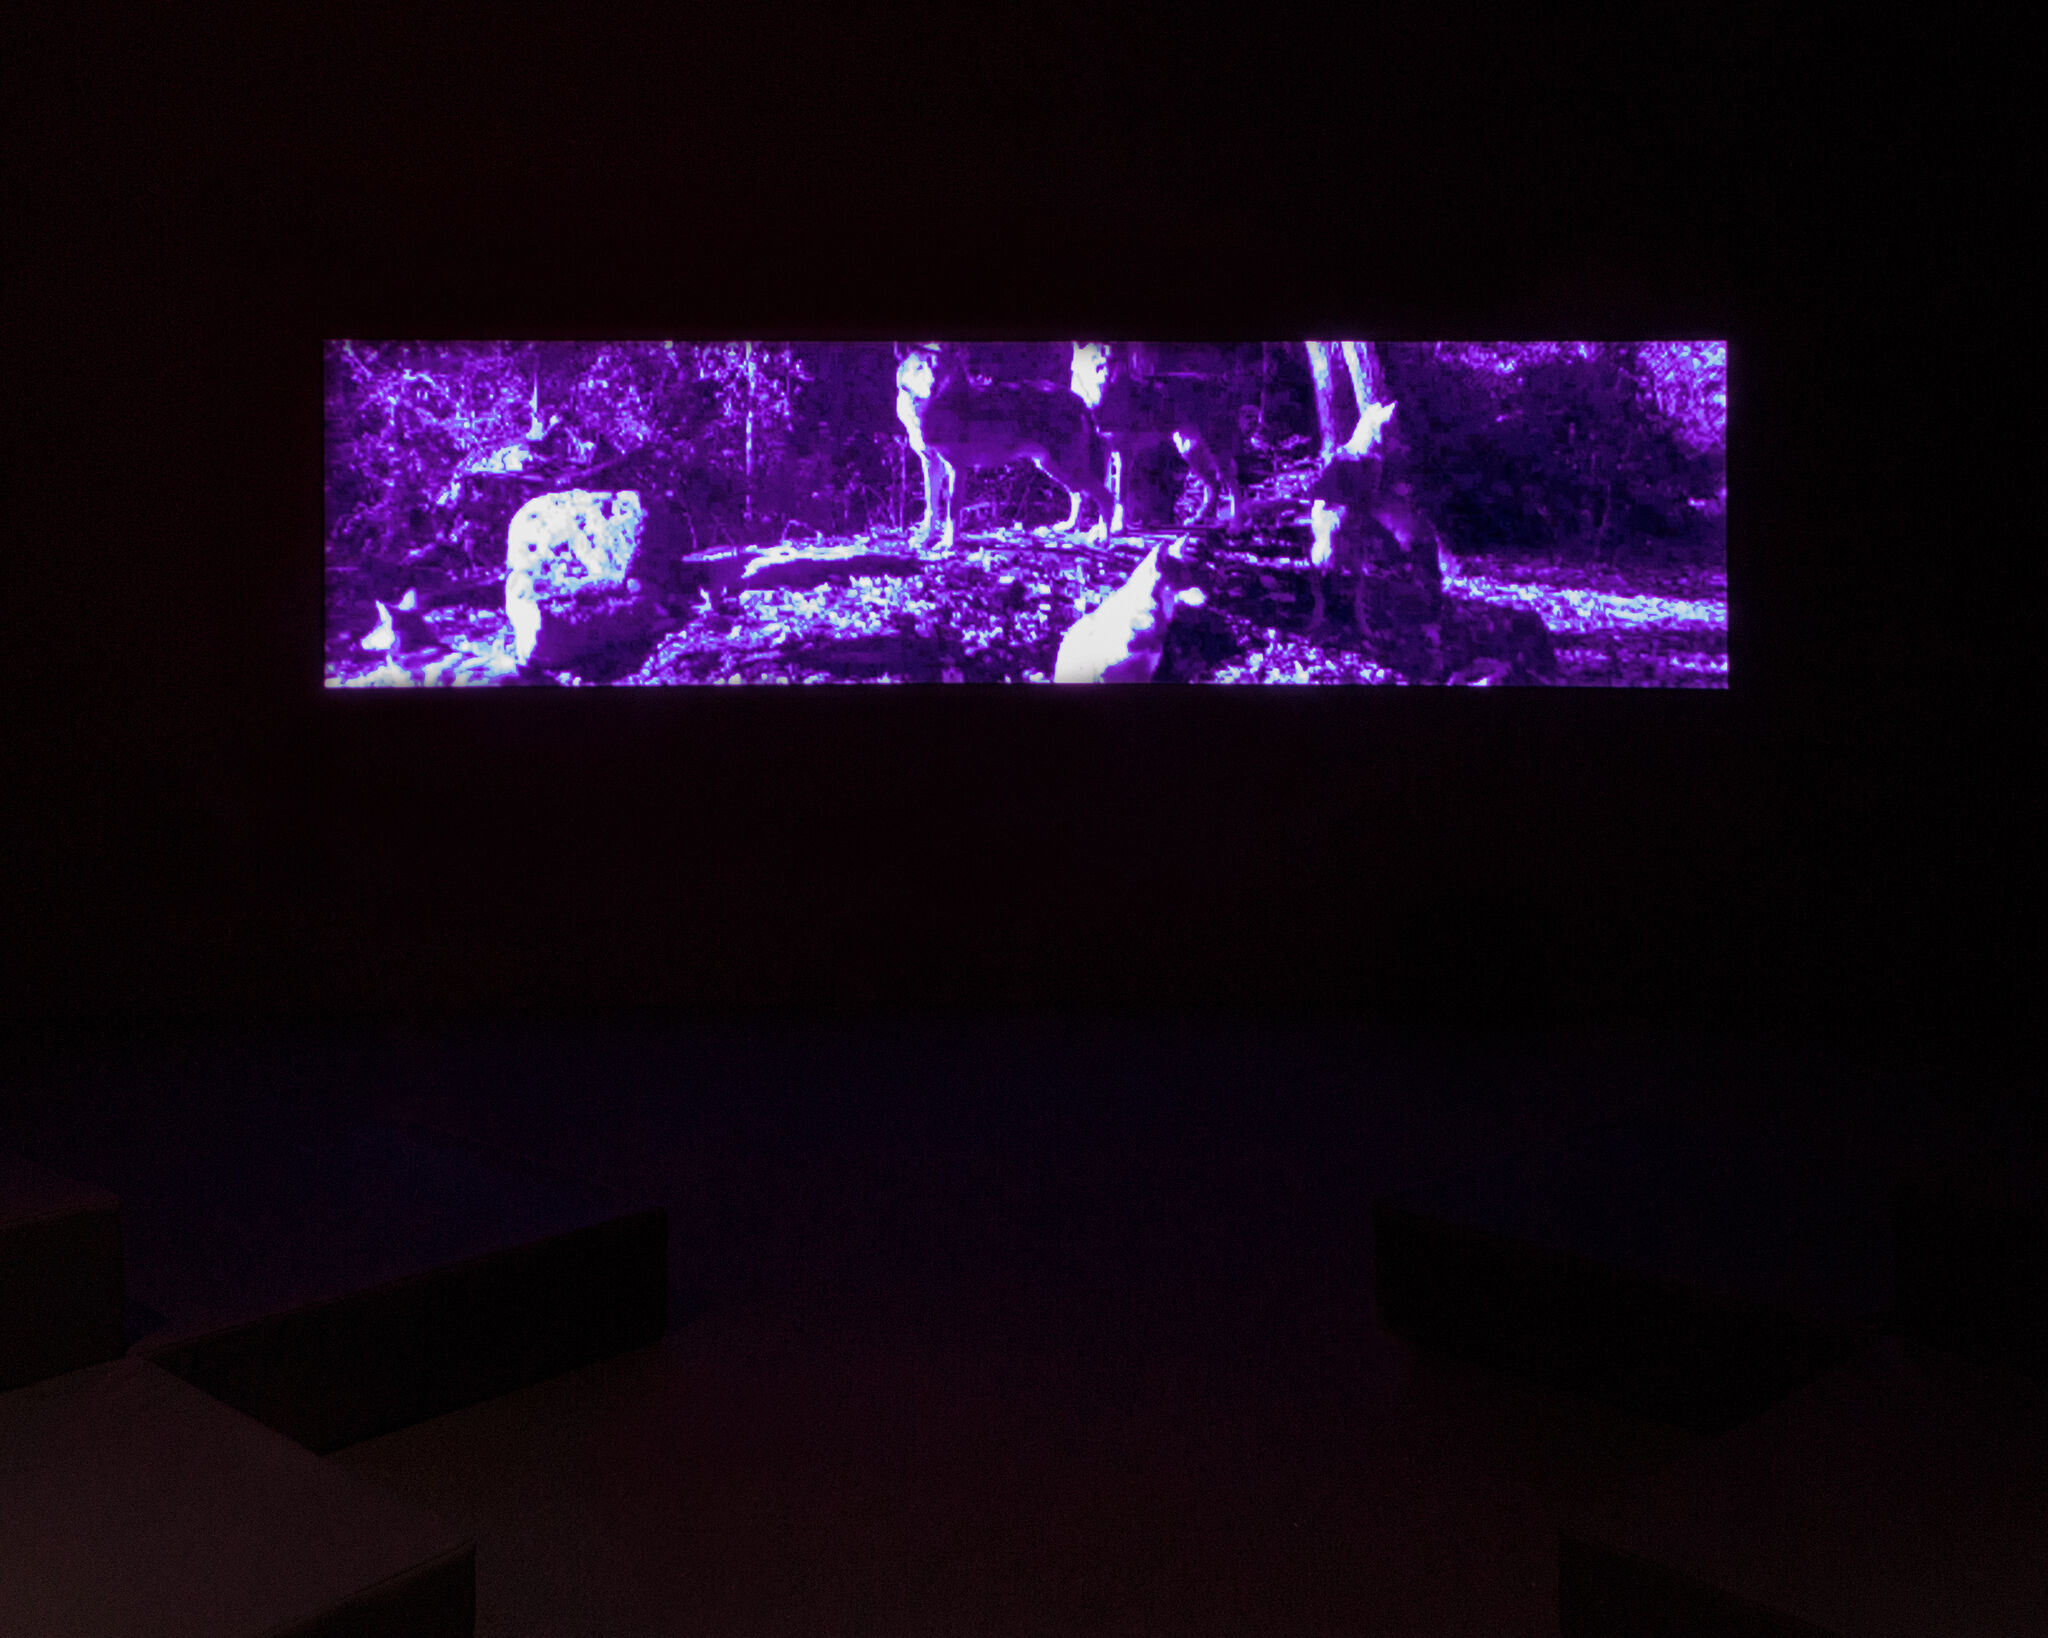 A wide rectangular screen displaying a purple hued view of wolves out in the wild.